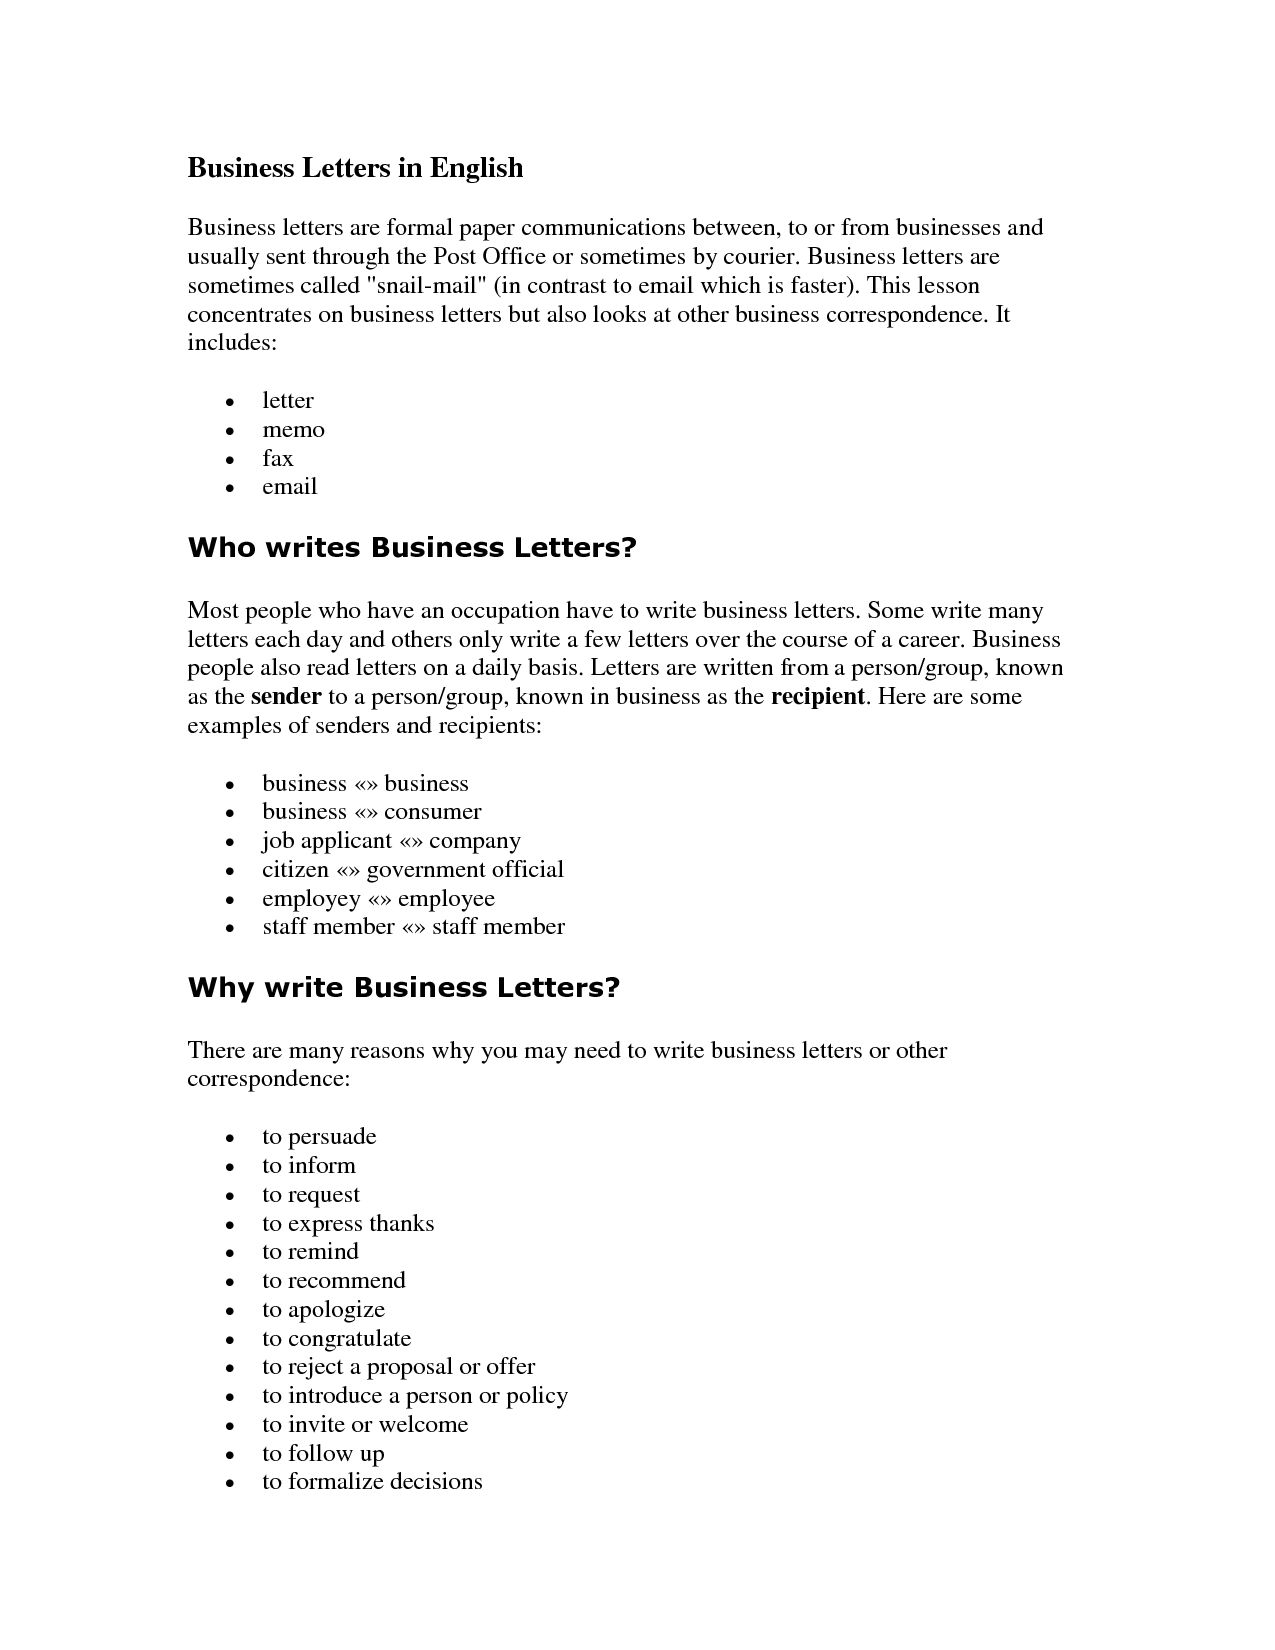 Letter Writing: Business Letters - PowerPoint PPT Presentation